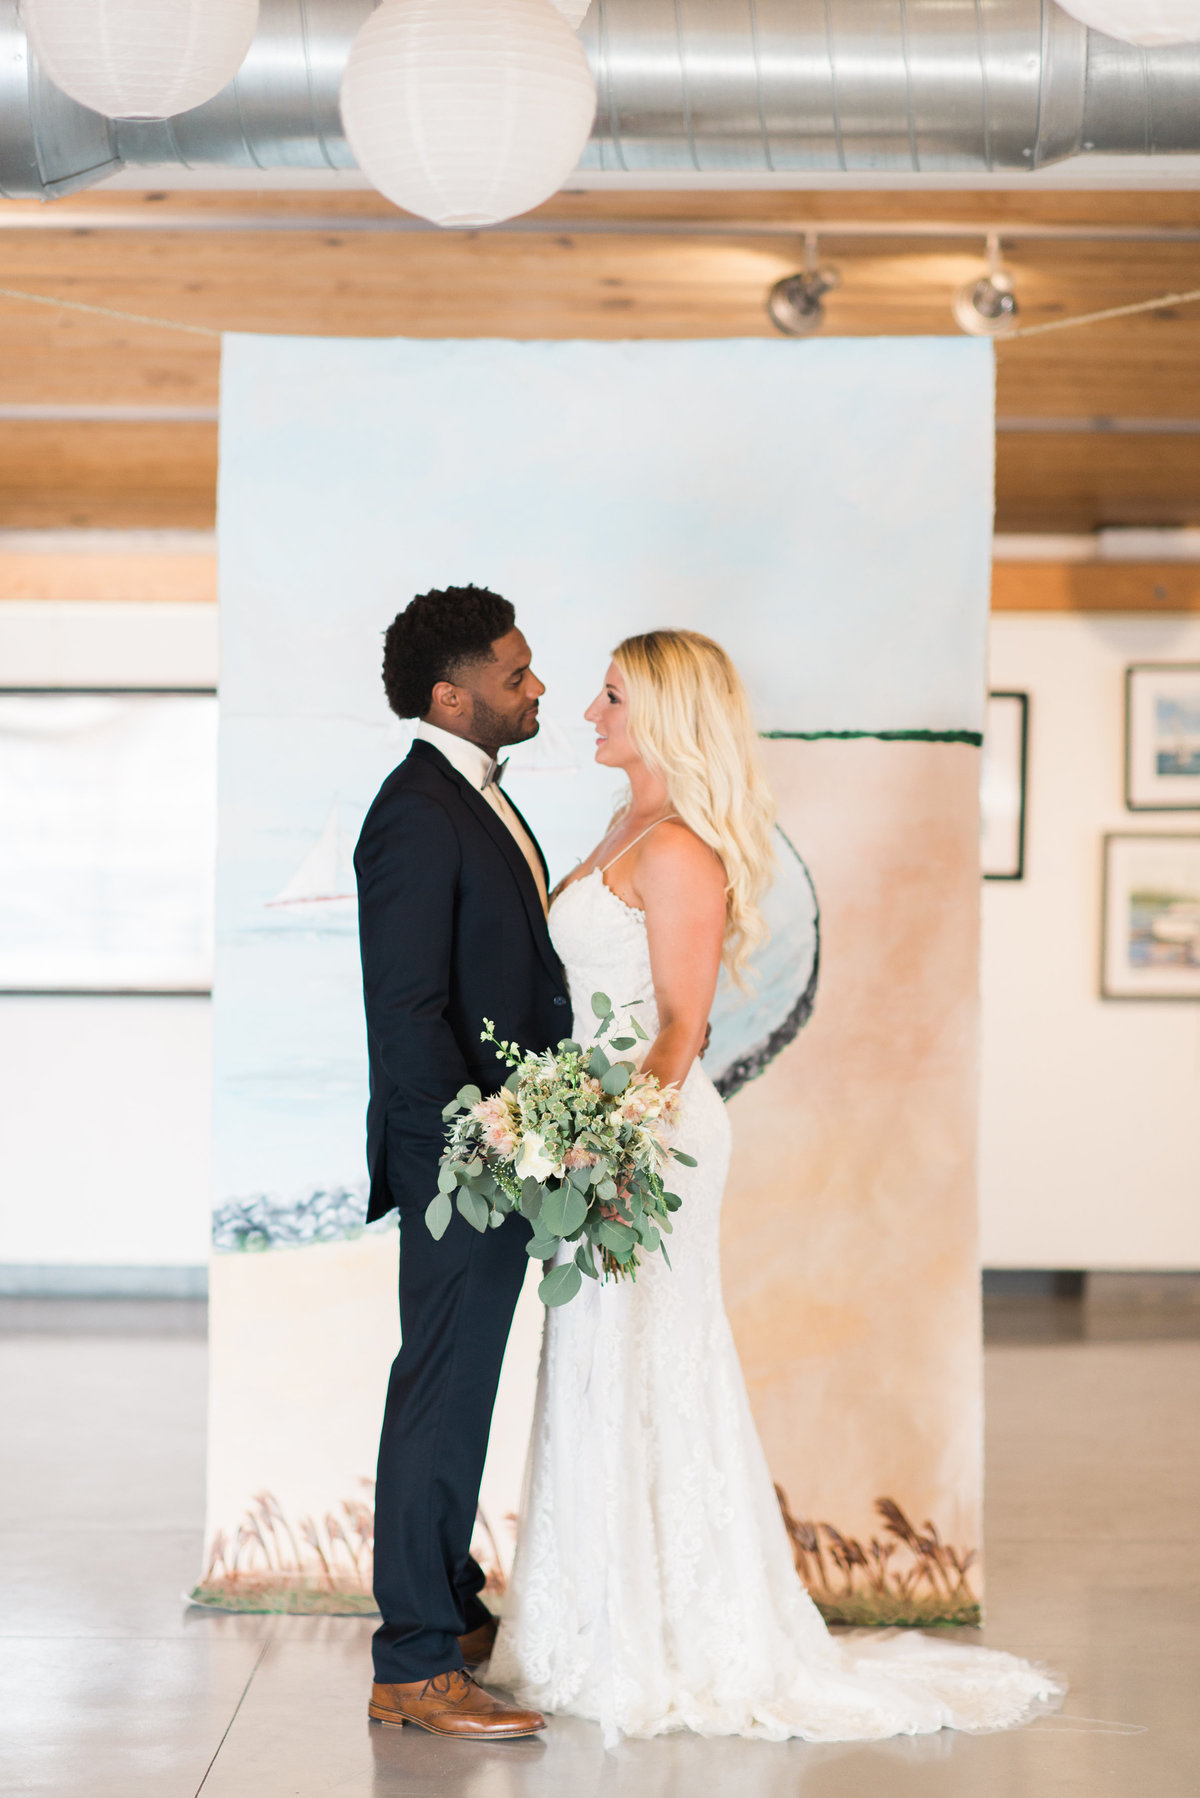 Bride and groom standing in front of Chesapeake Bay inspired  wedding backdrop By Brittany Branson as featured in What's Up Wedding Magazine